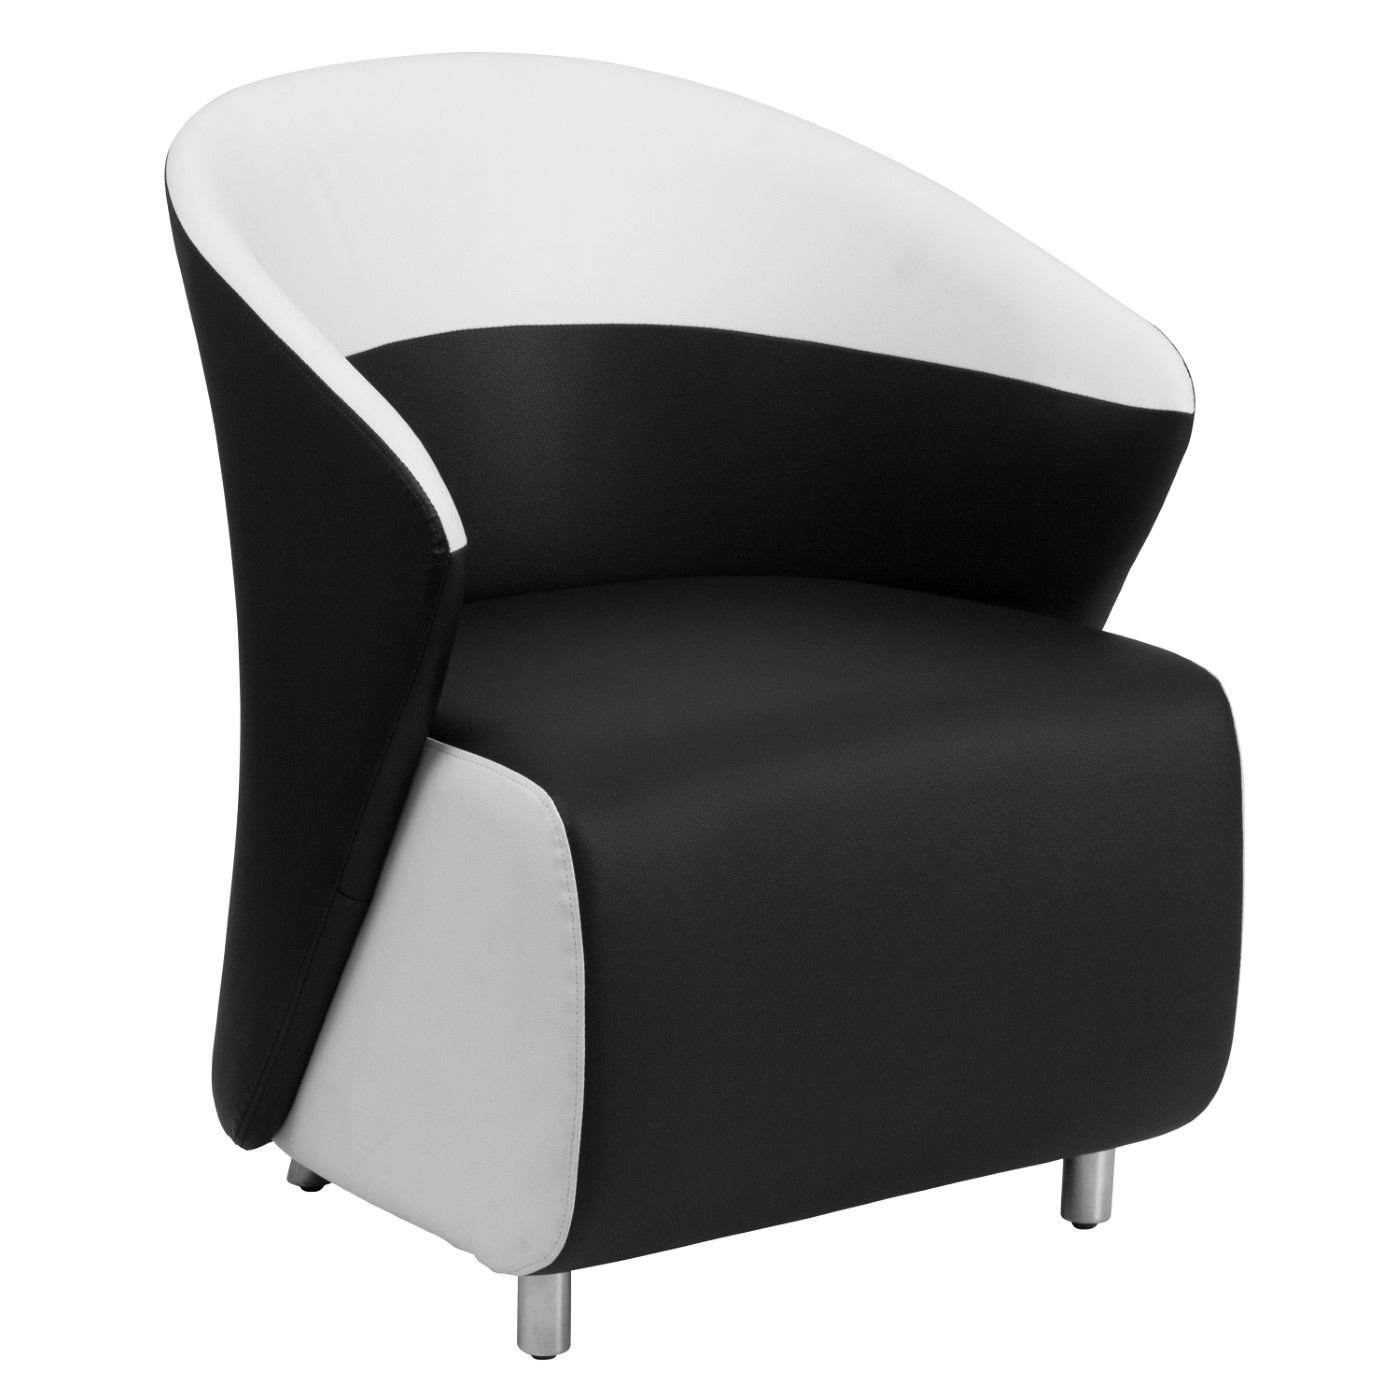 Black LeatherSoft Curved Barrel Back Lounge Chair with Melrose White Detailing